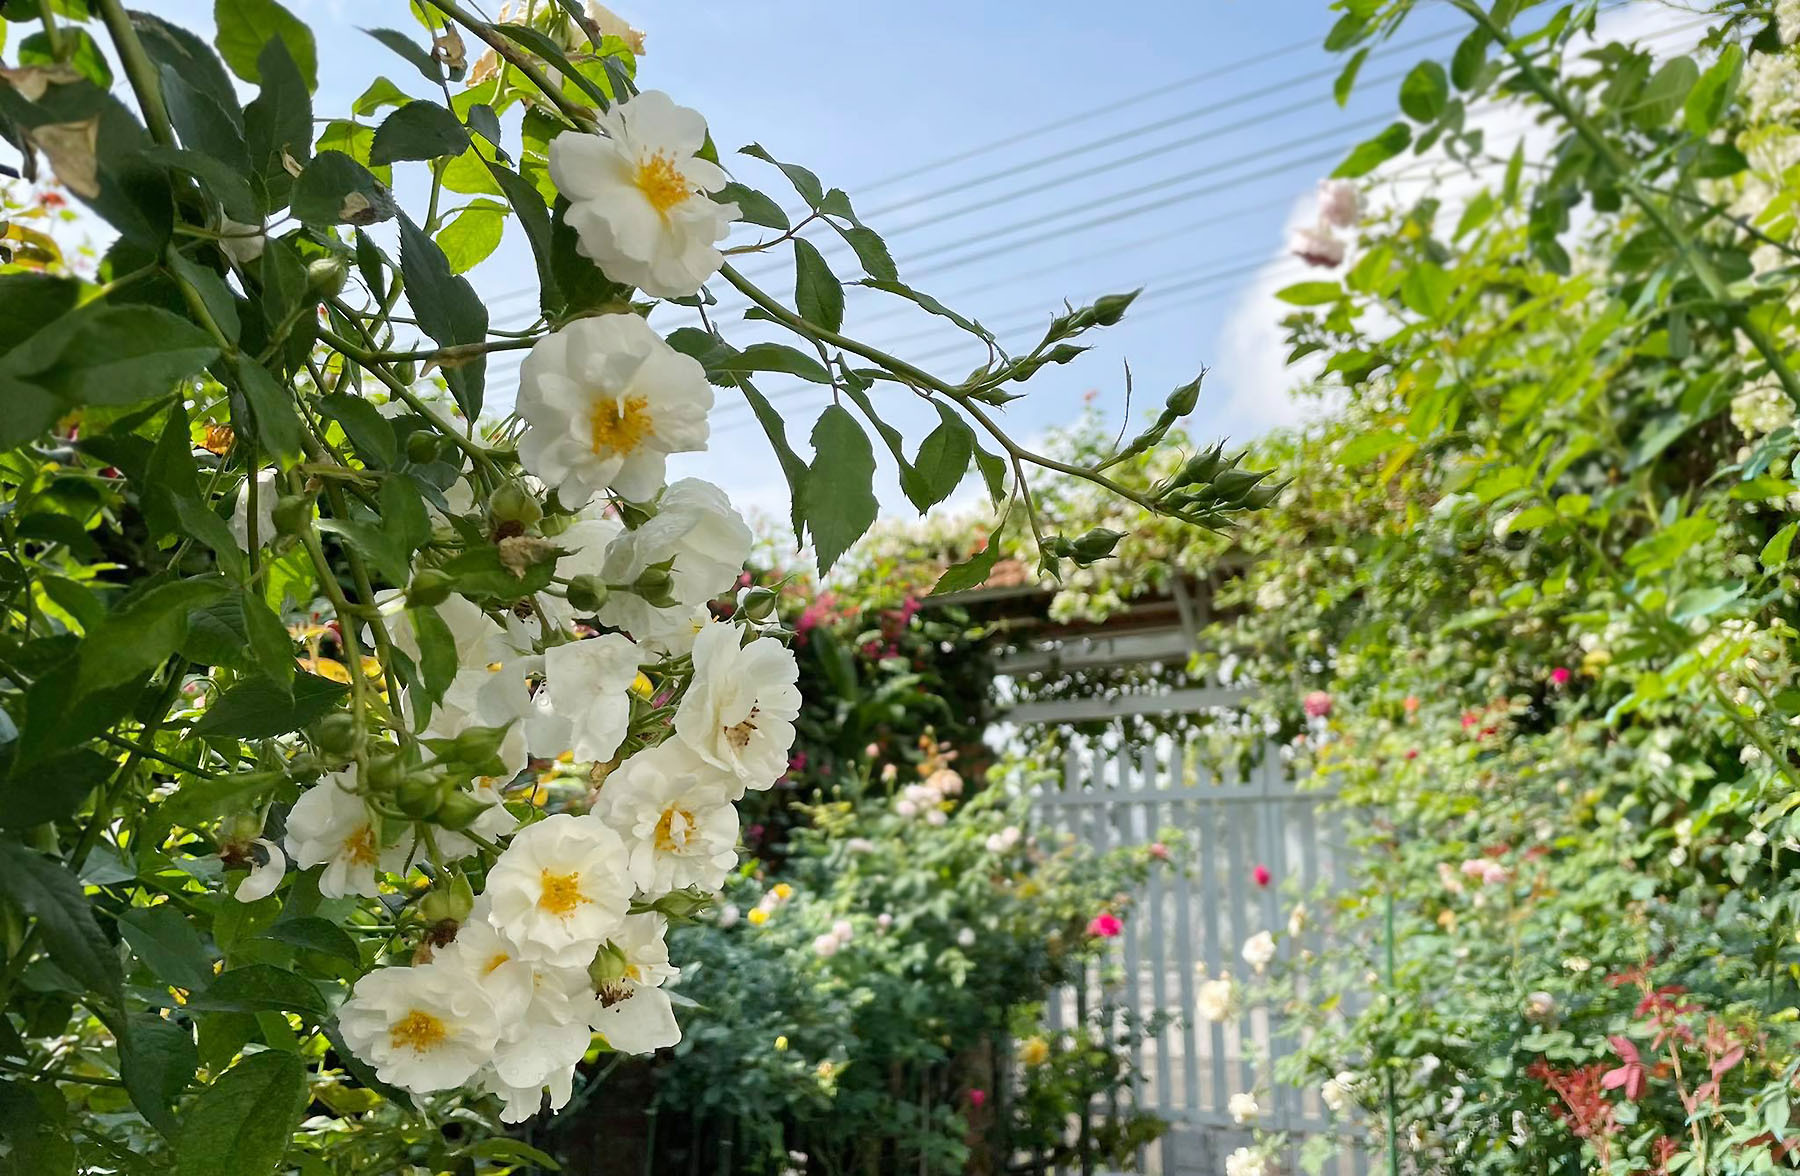 Central Highlands business woman designs home rose garden with nearly 500 plant species - 6